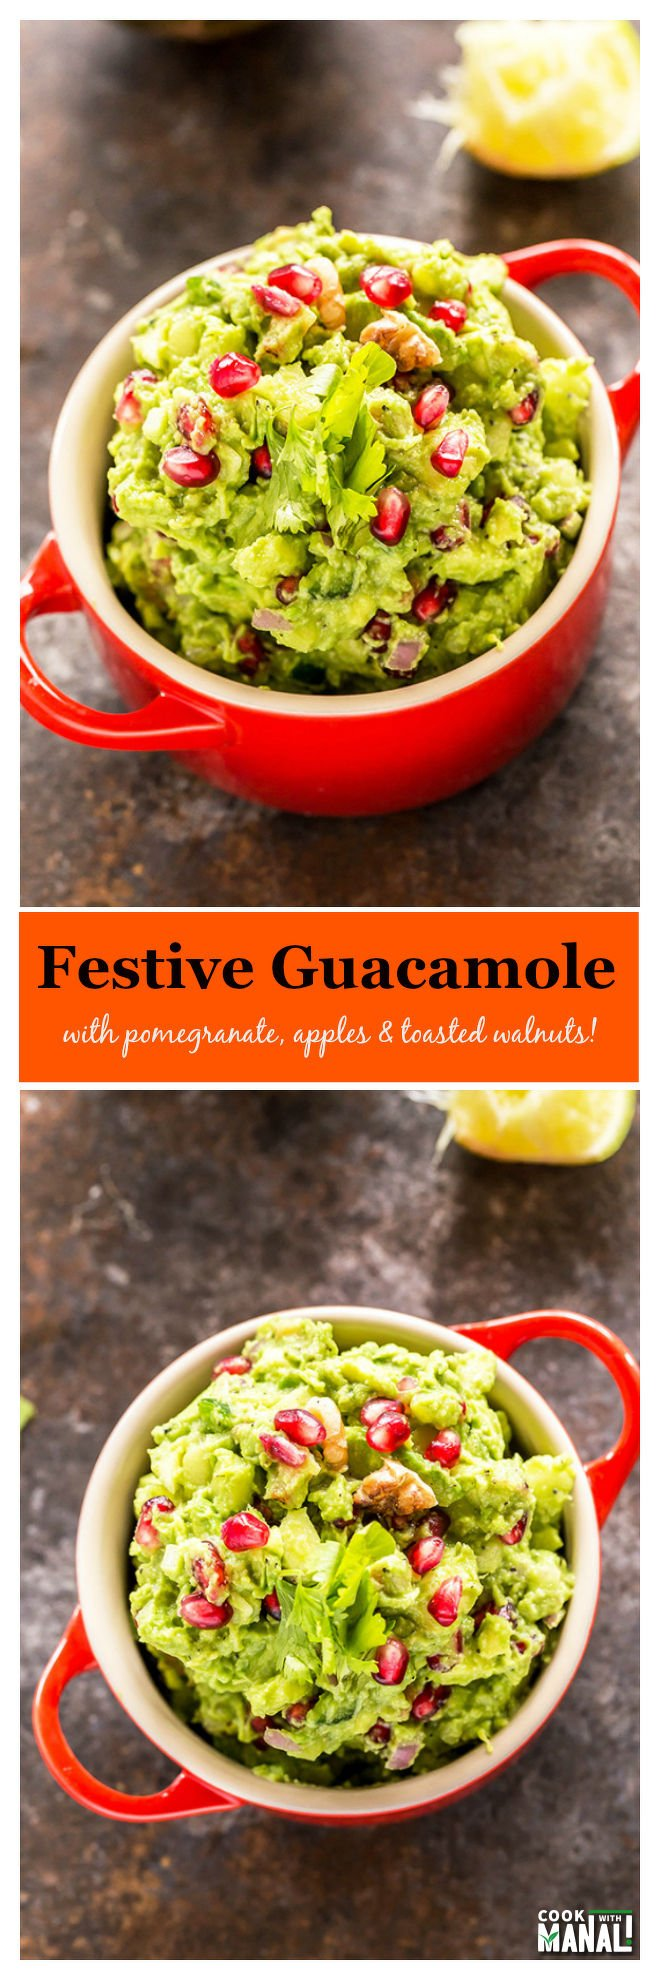 festive-guacamole-with-pomegranate-apples-collage